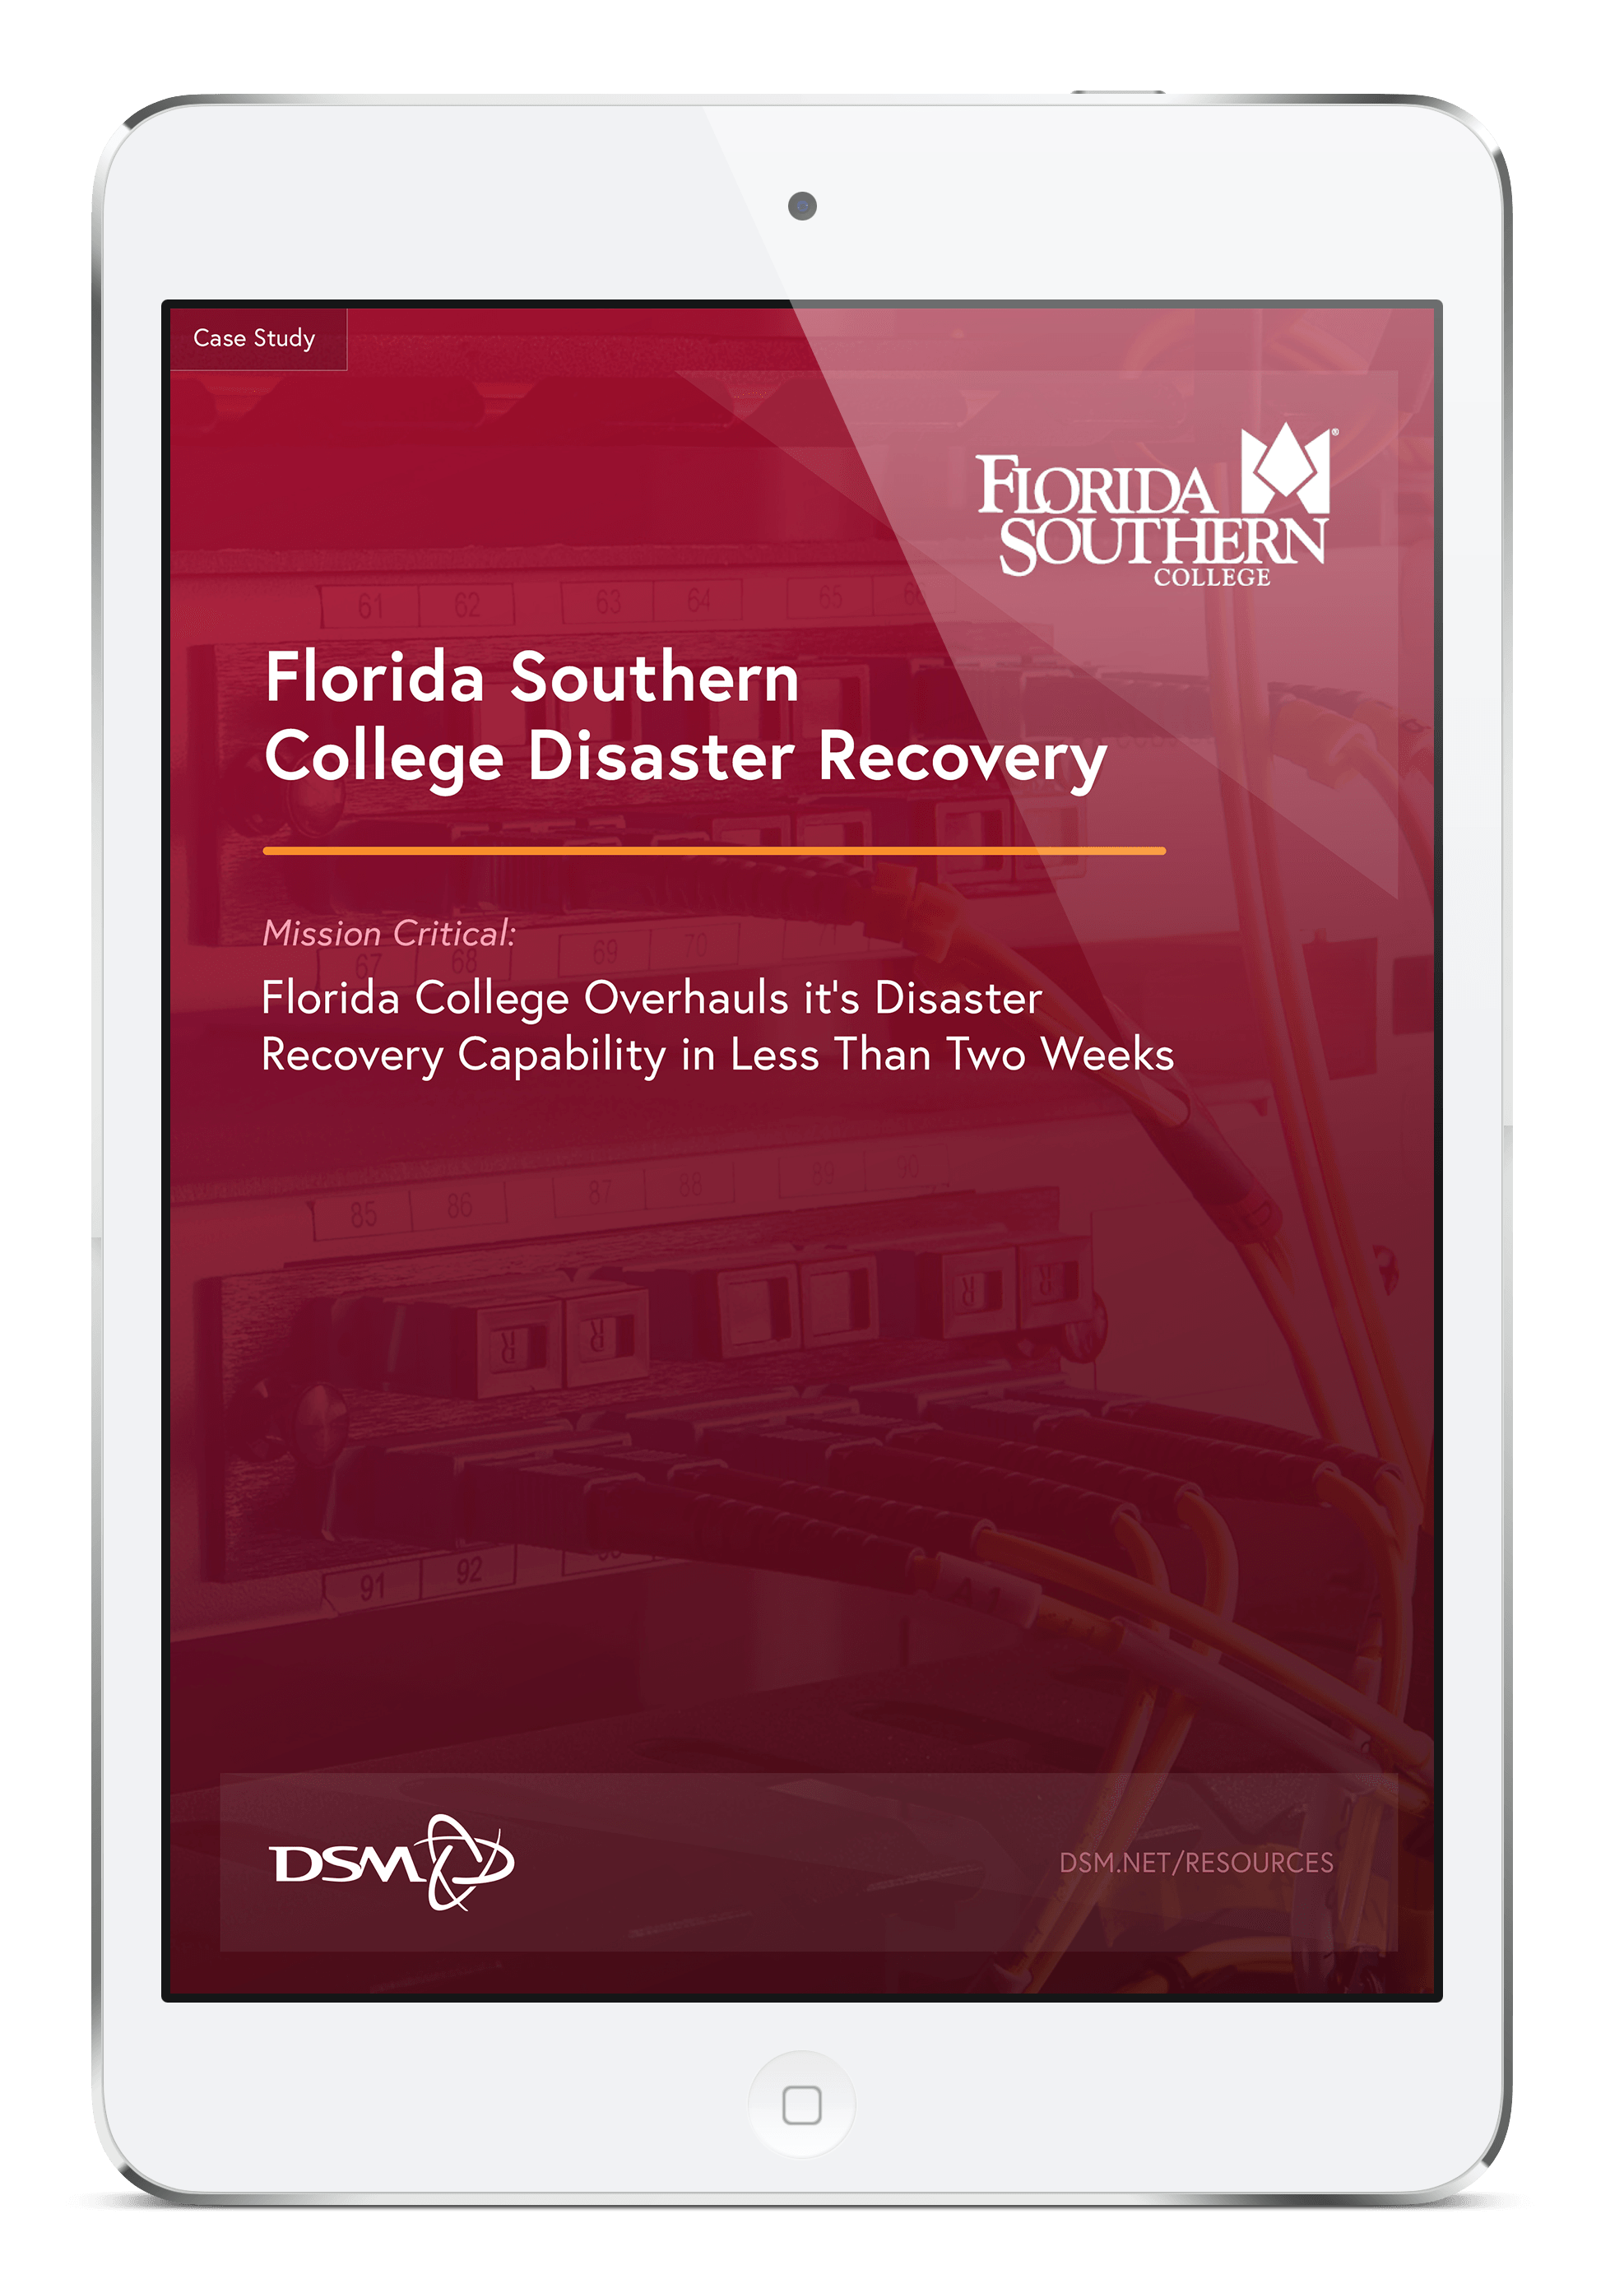 Florida Southern College Case Study